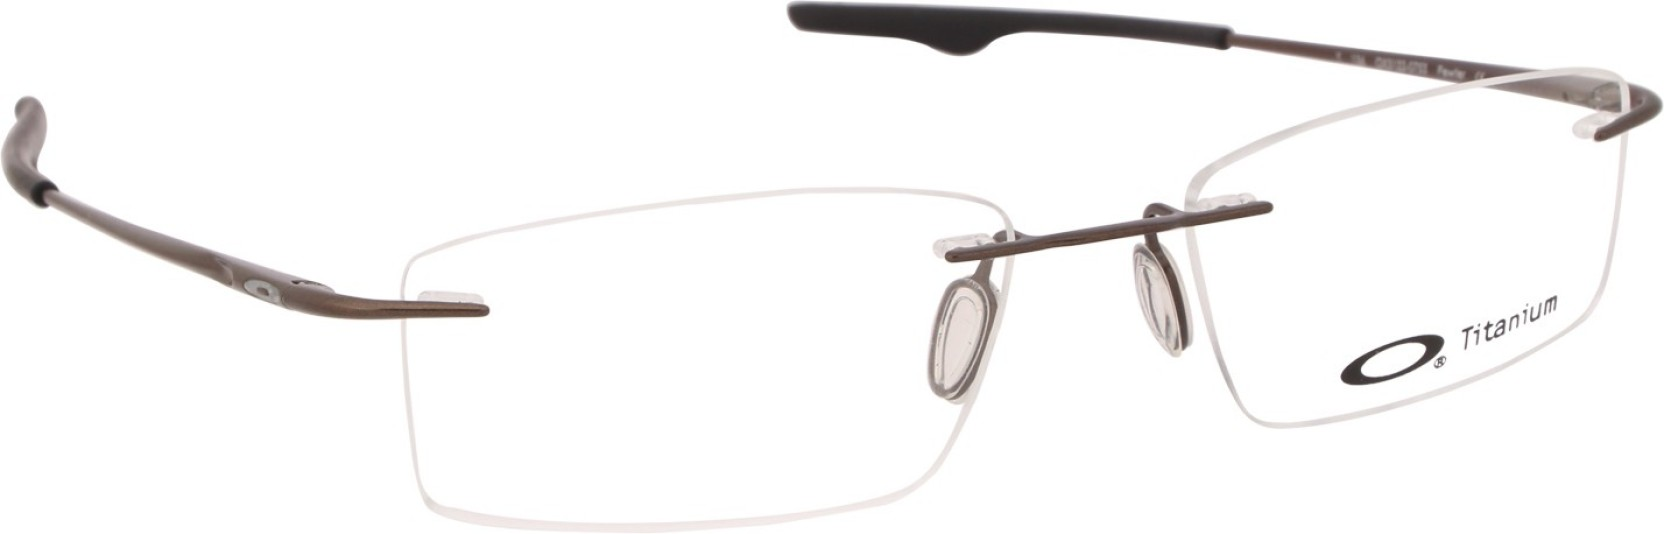 b227352303 Oakley Rimless Frames « One More Soul